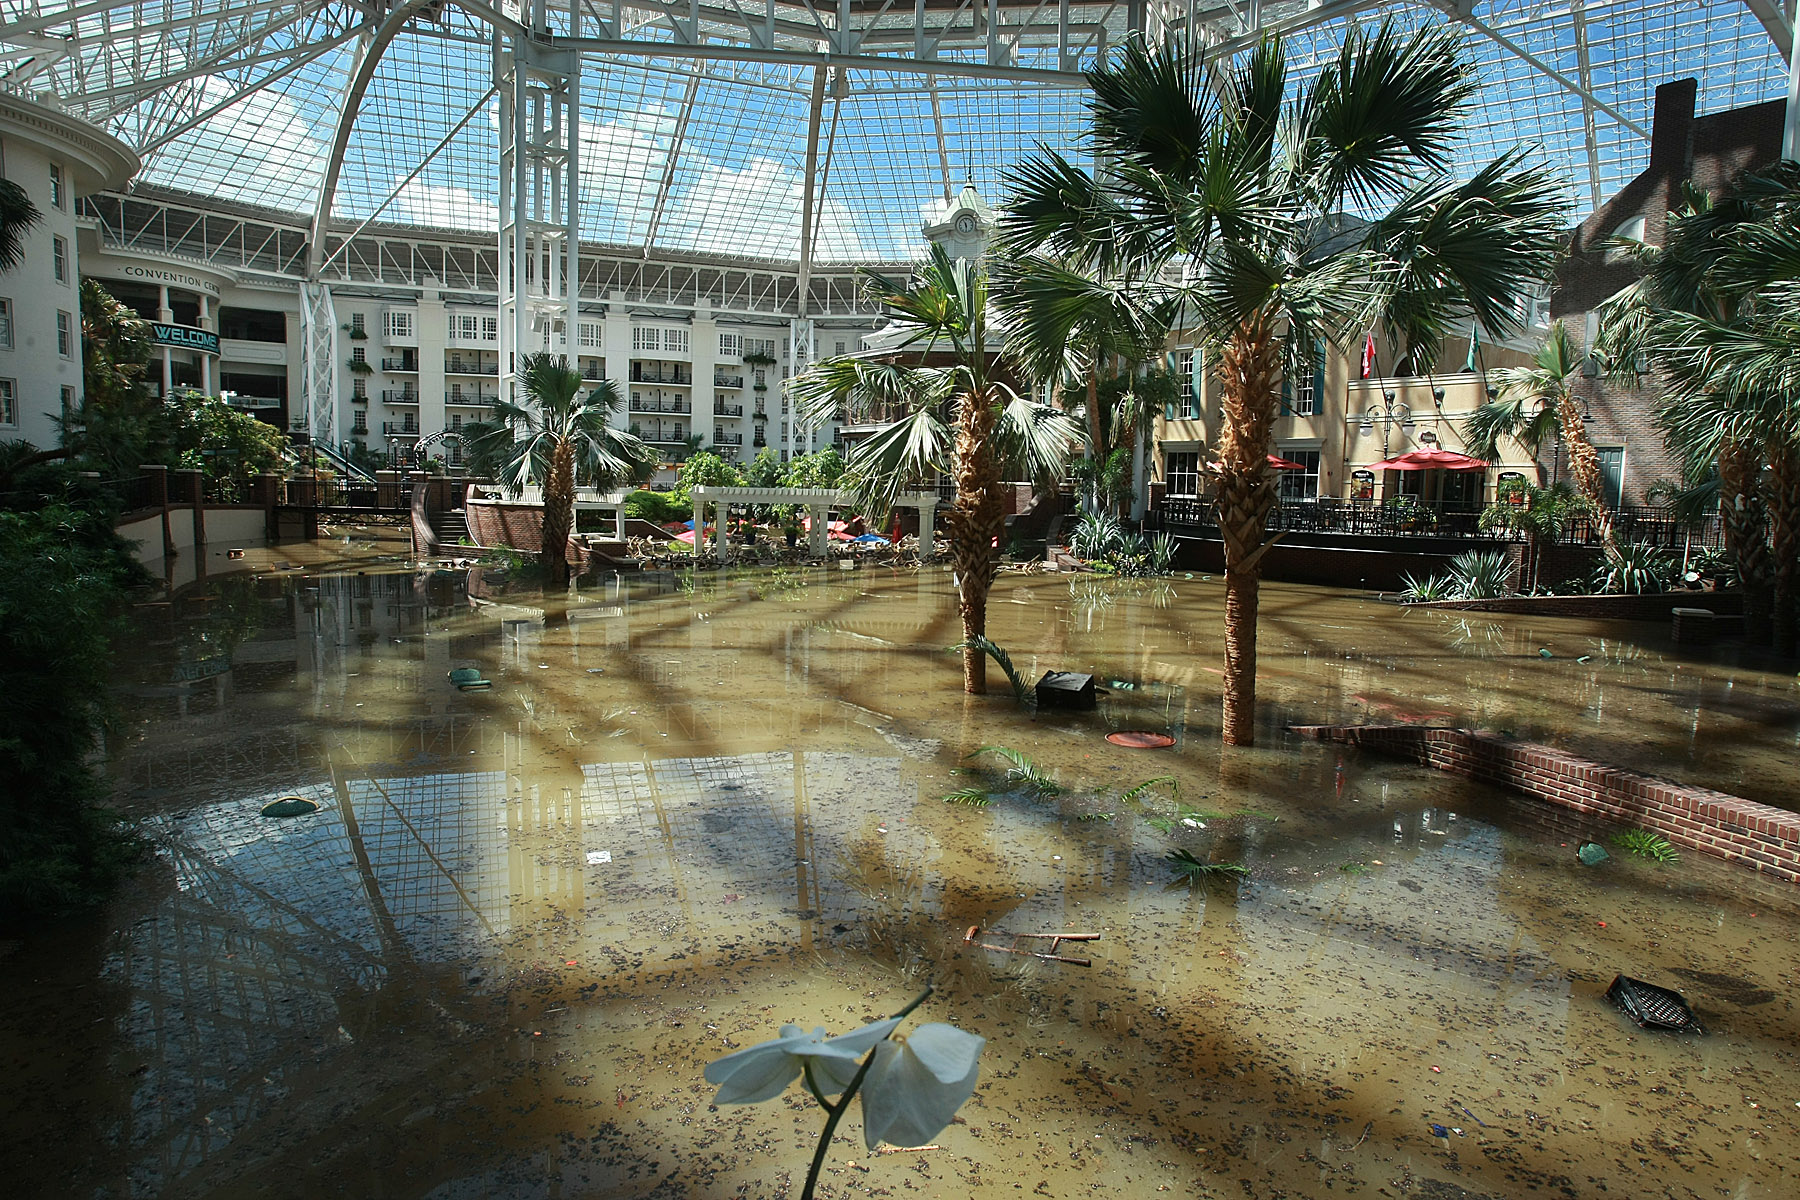 lord opryland resort convention center map with Record Flooding Devastates Nashville Tn on Index also Photo Tours in addition Photo Gallery also Gaylord Hotels Vacation Resorts And Convention Centers moreover Vpoe.